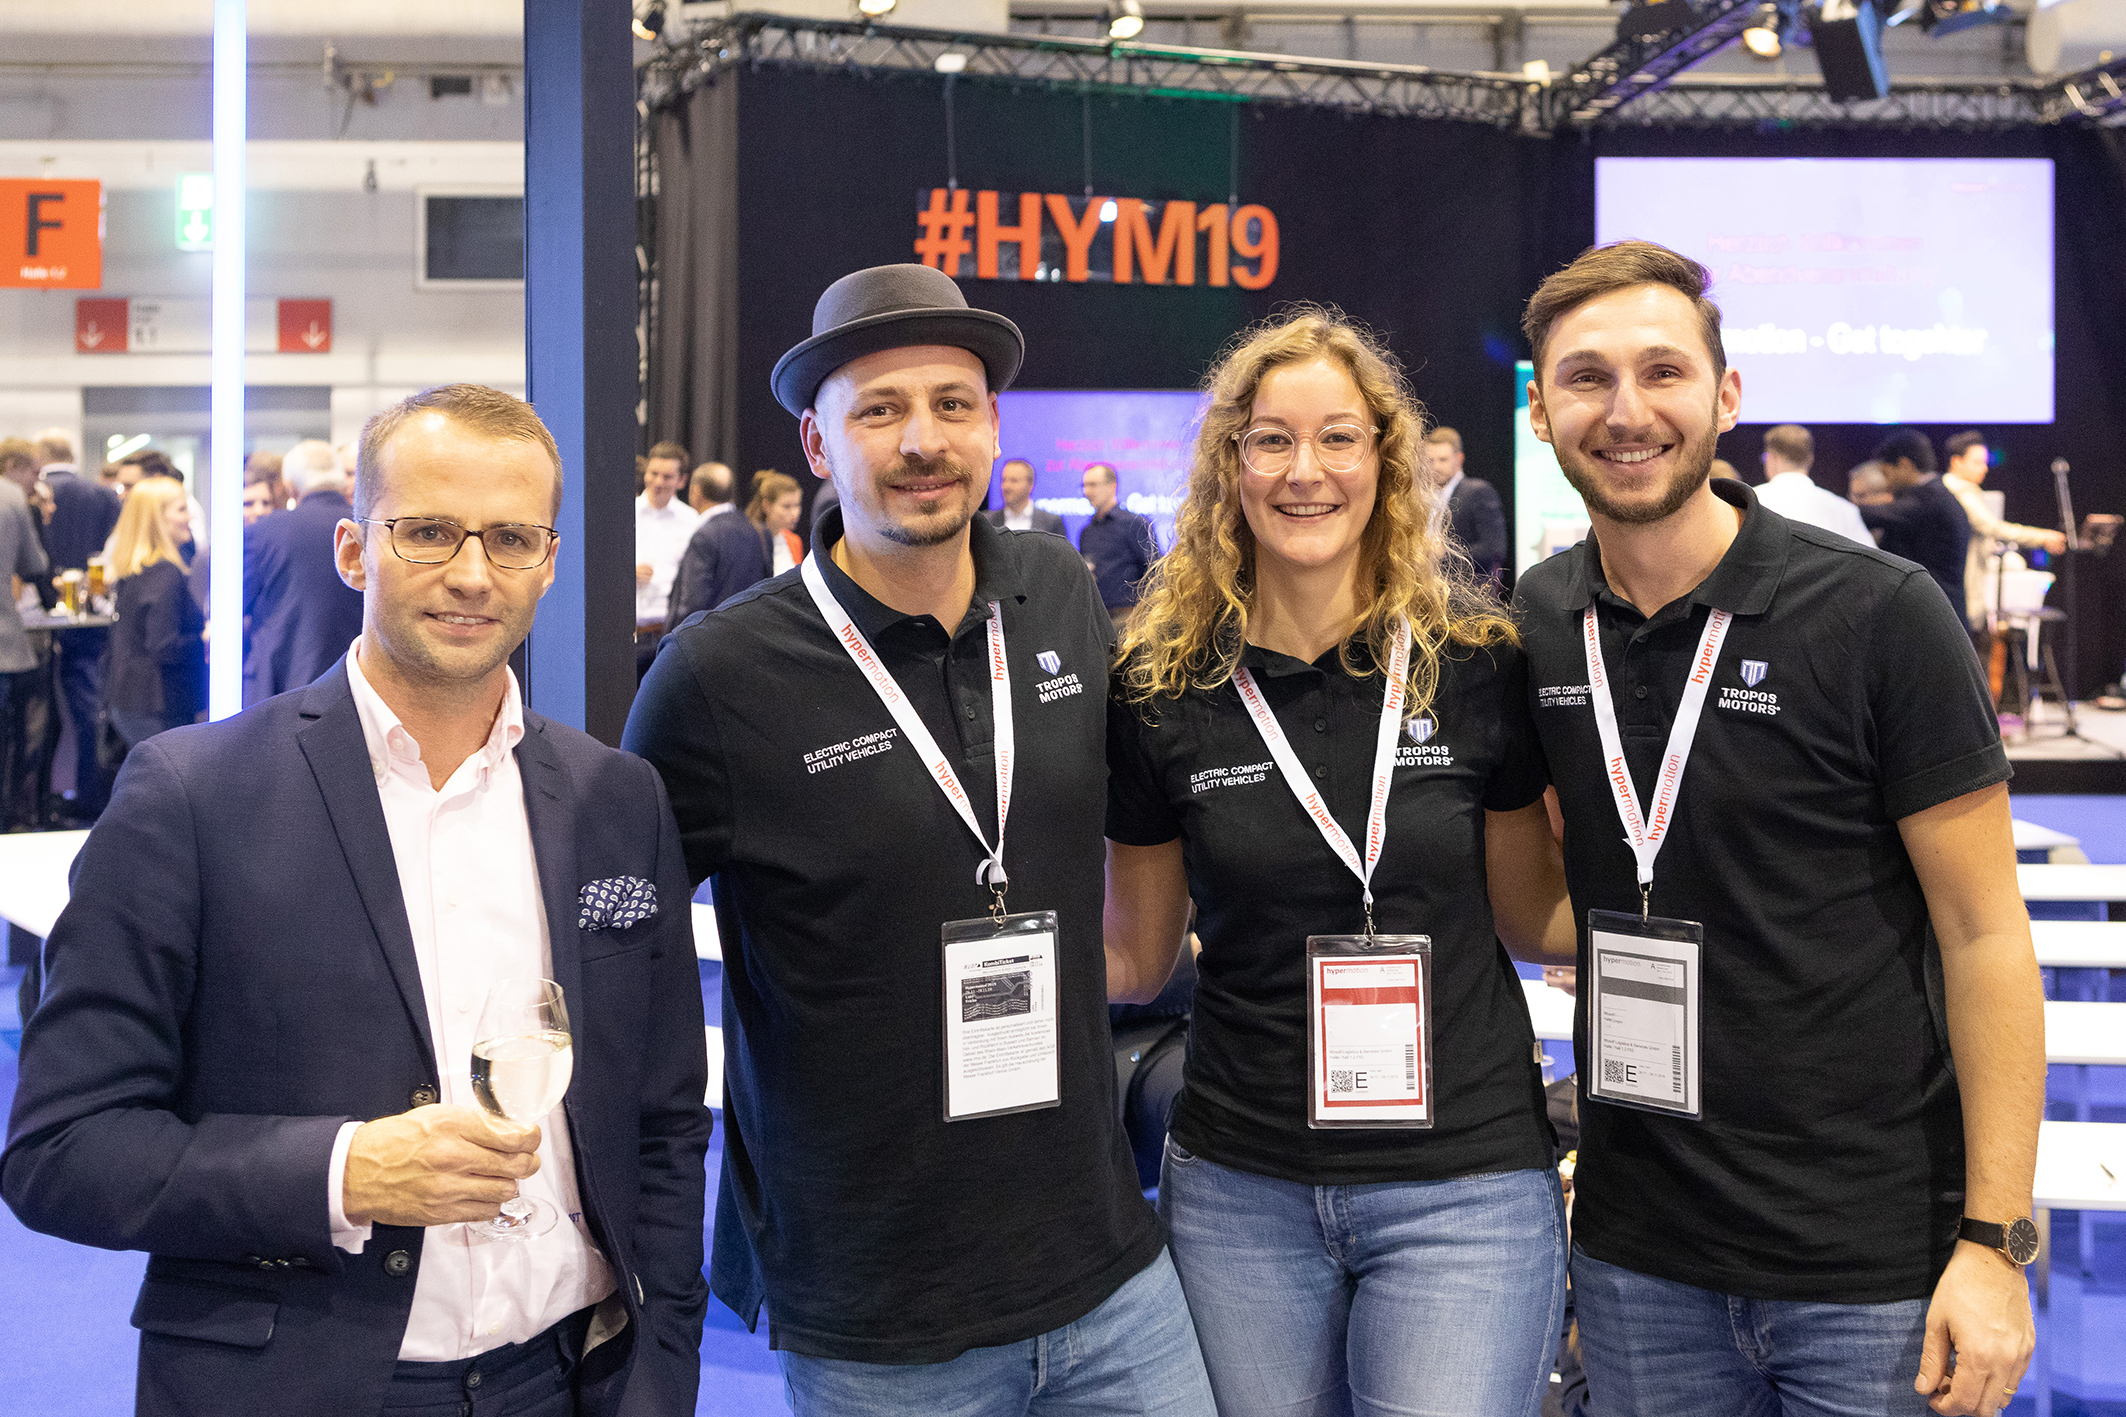 Hypermotion 2019, Messe Frankfurt, Germany